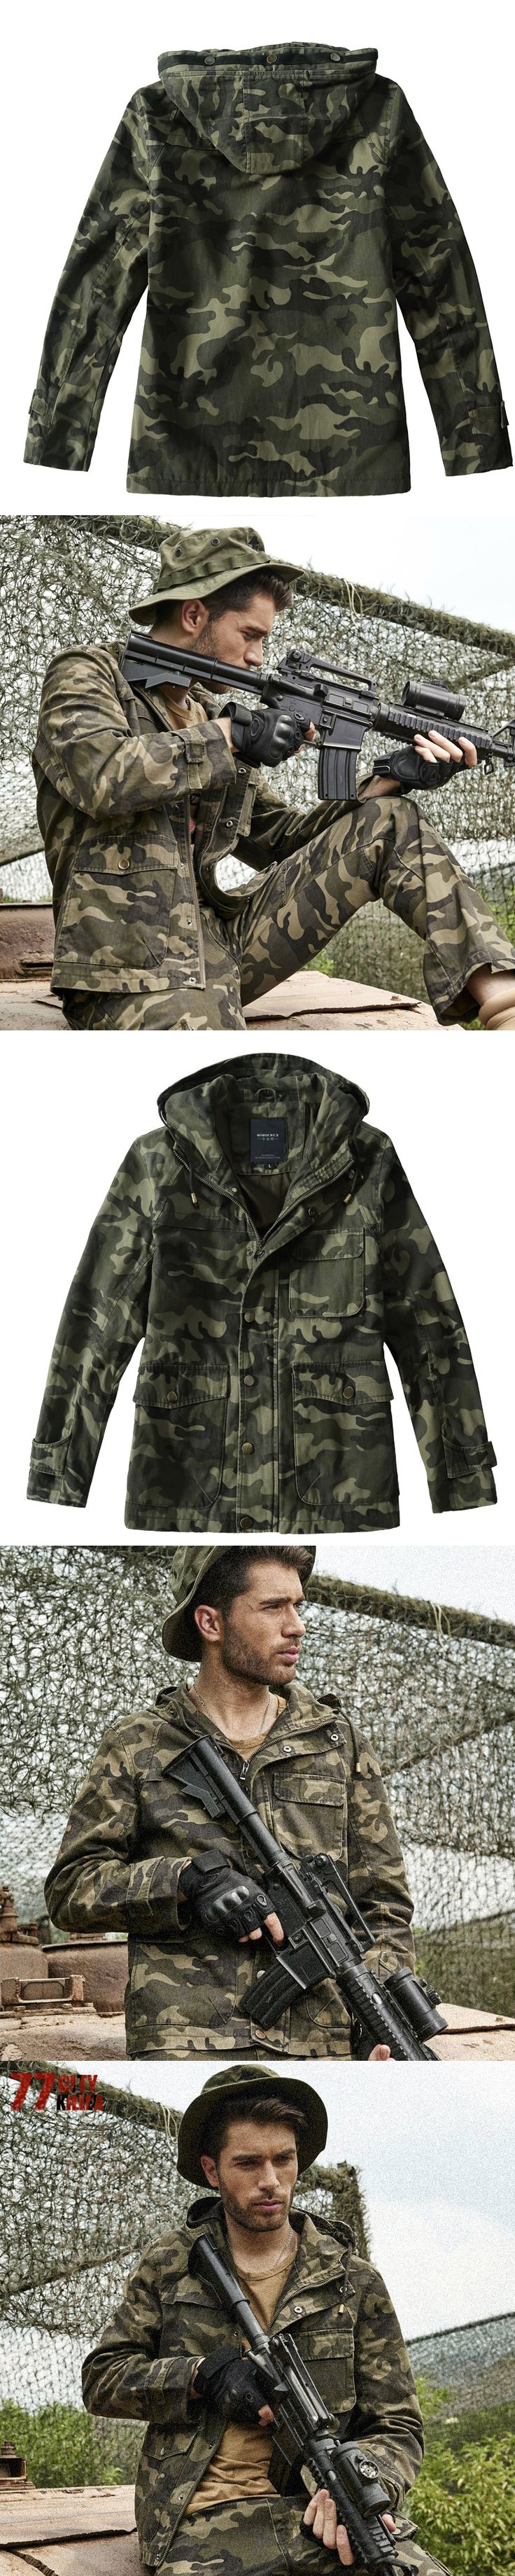 77City Killer Mens Camouflage Flight Jackets Windproof Air Force Combat Jacket Long Sleeve Casual Pilot Coats J2504